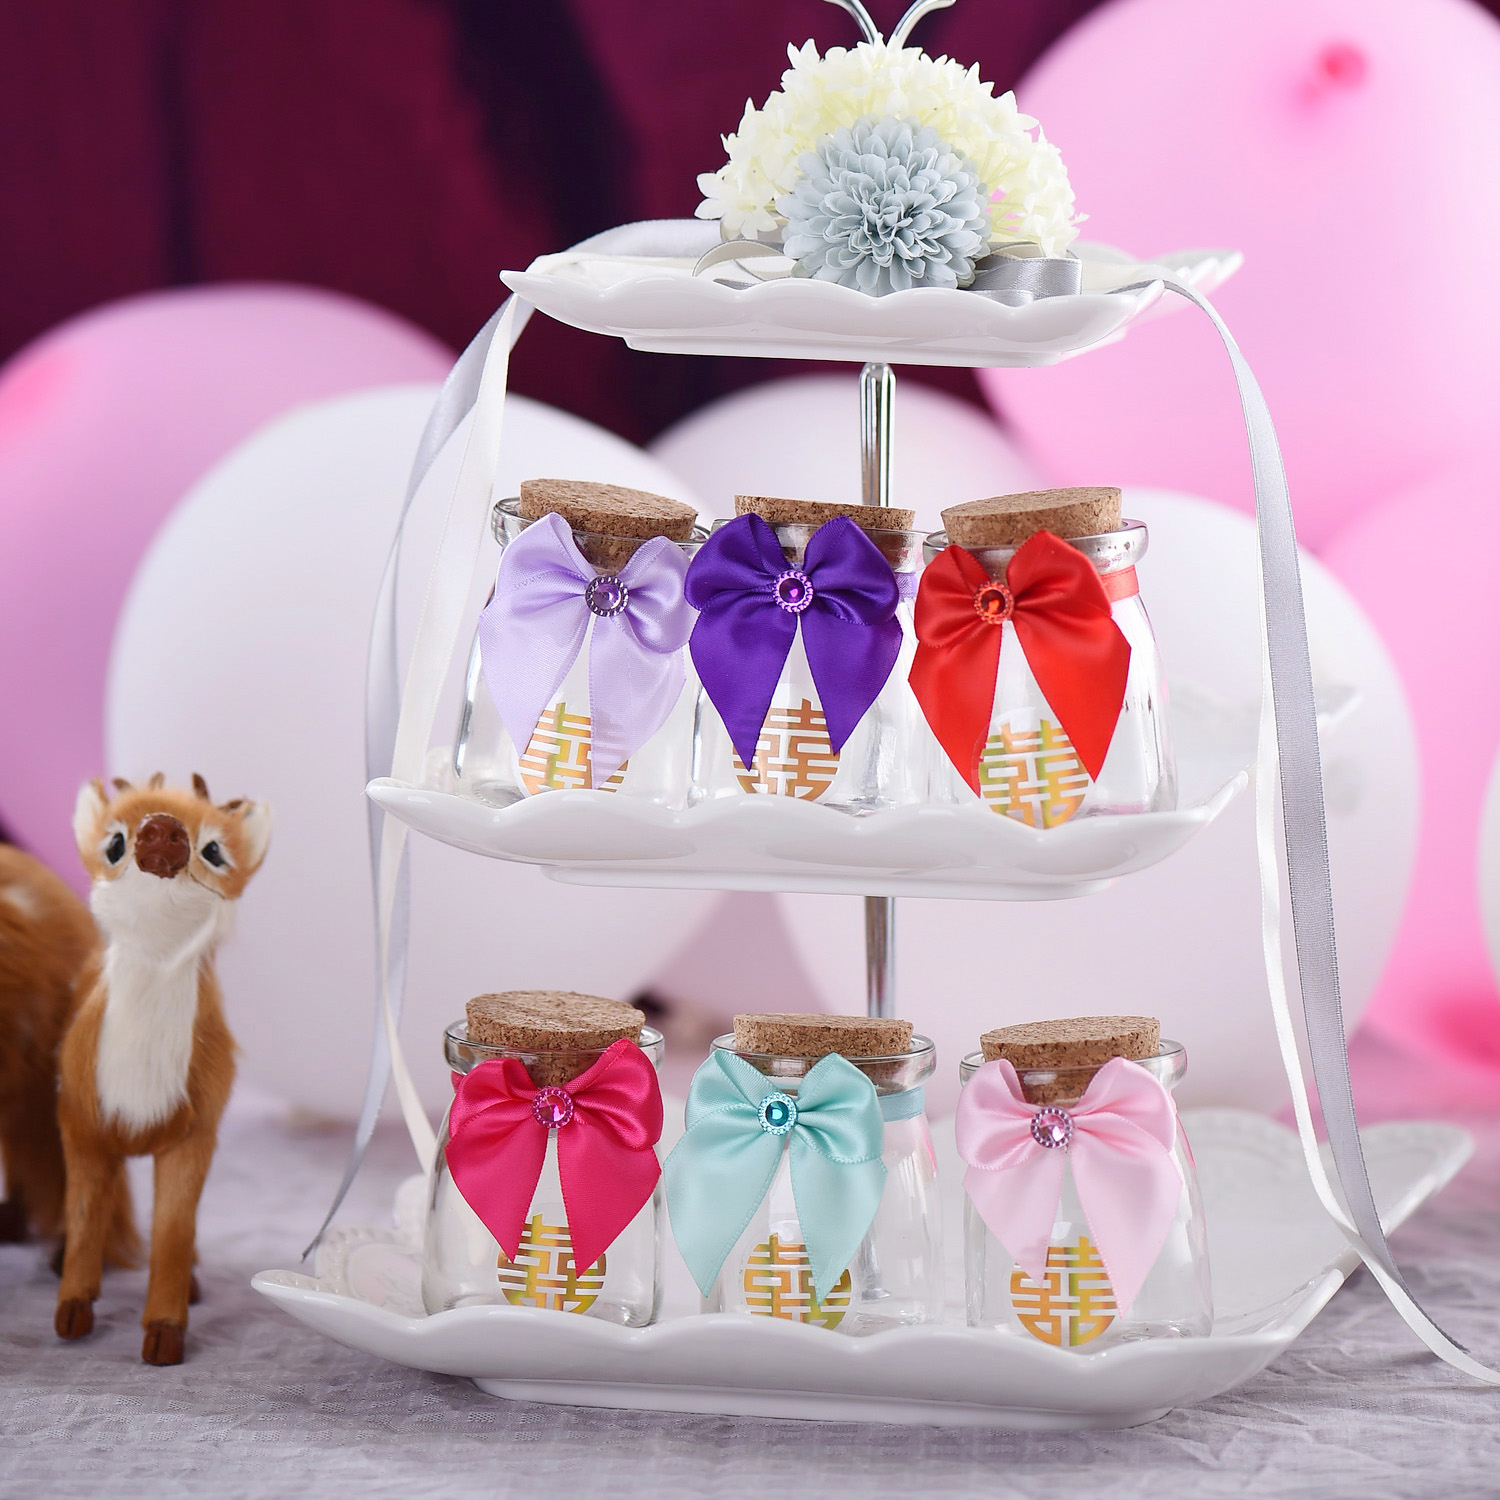 Wedding supplies wedding candy box creative wedding personalized candy box wishing bottle glass pudding bottle candy box